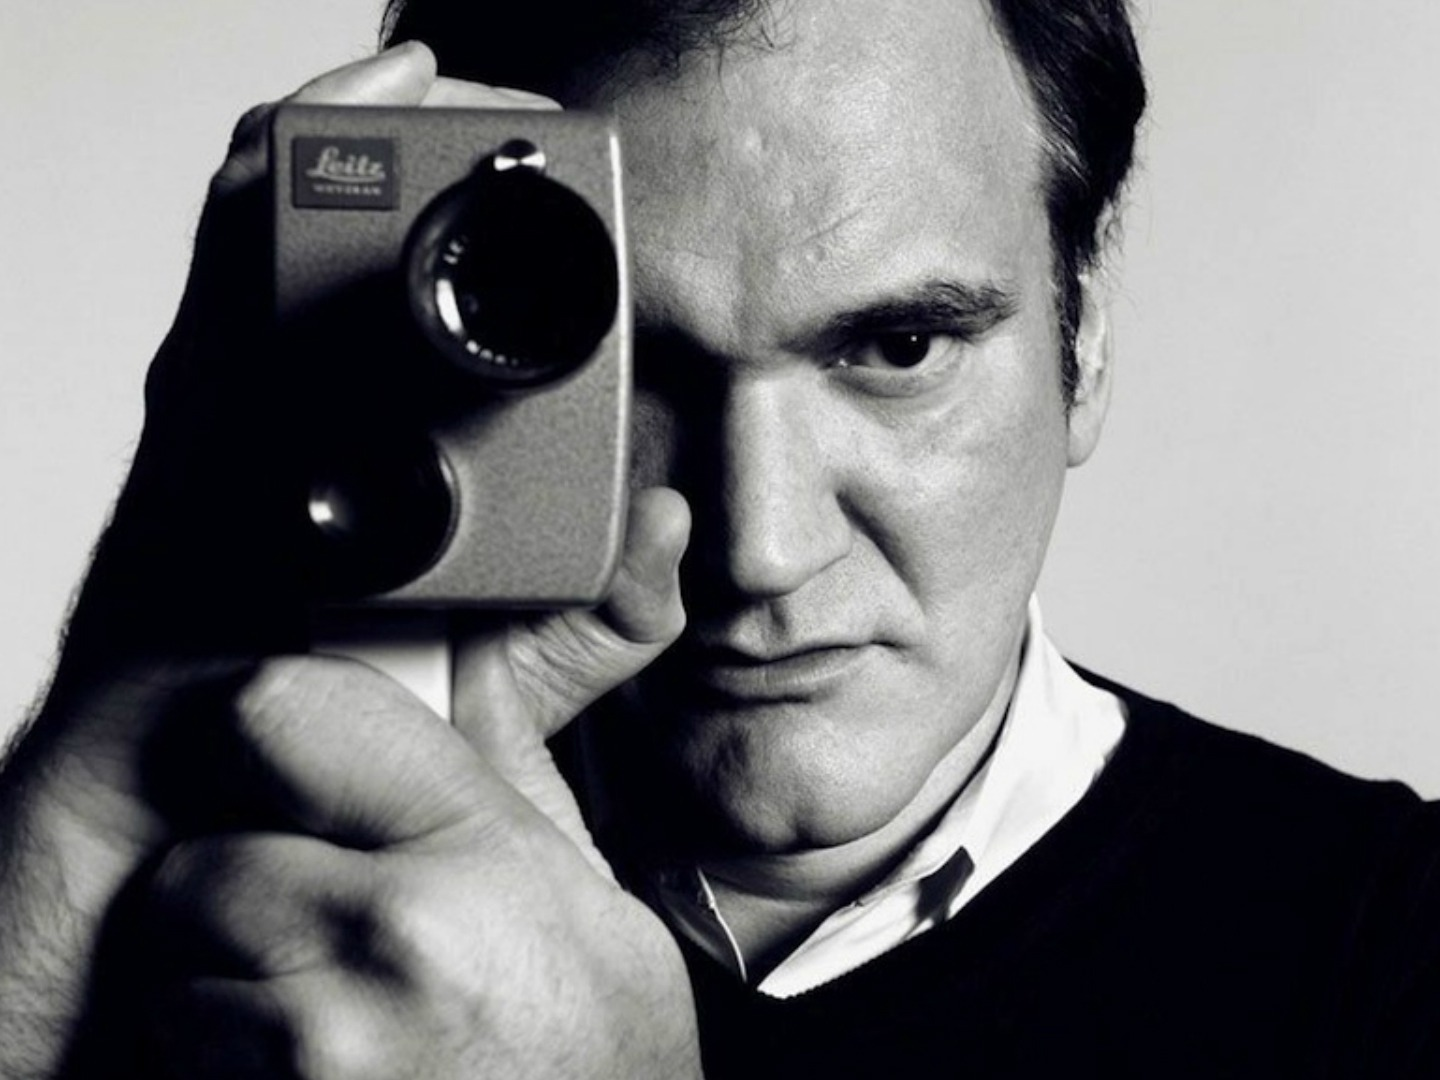 Writer/Director Quentin Tarantino